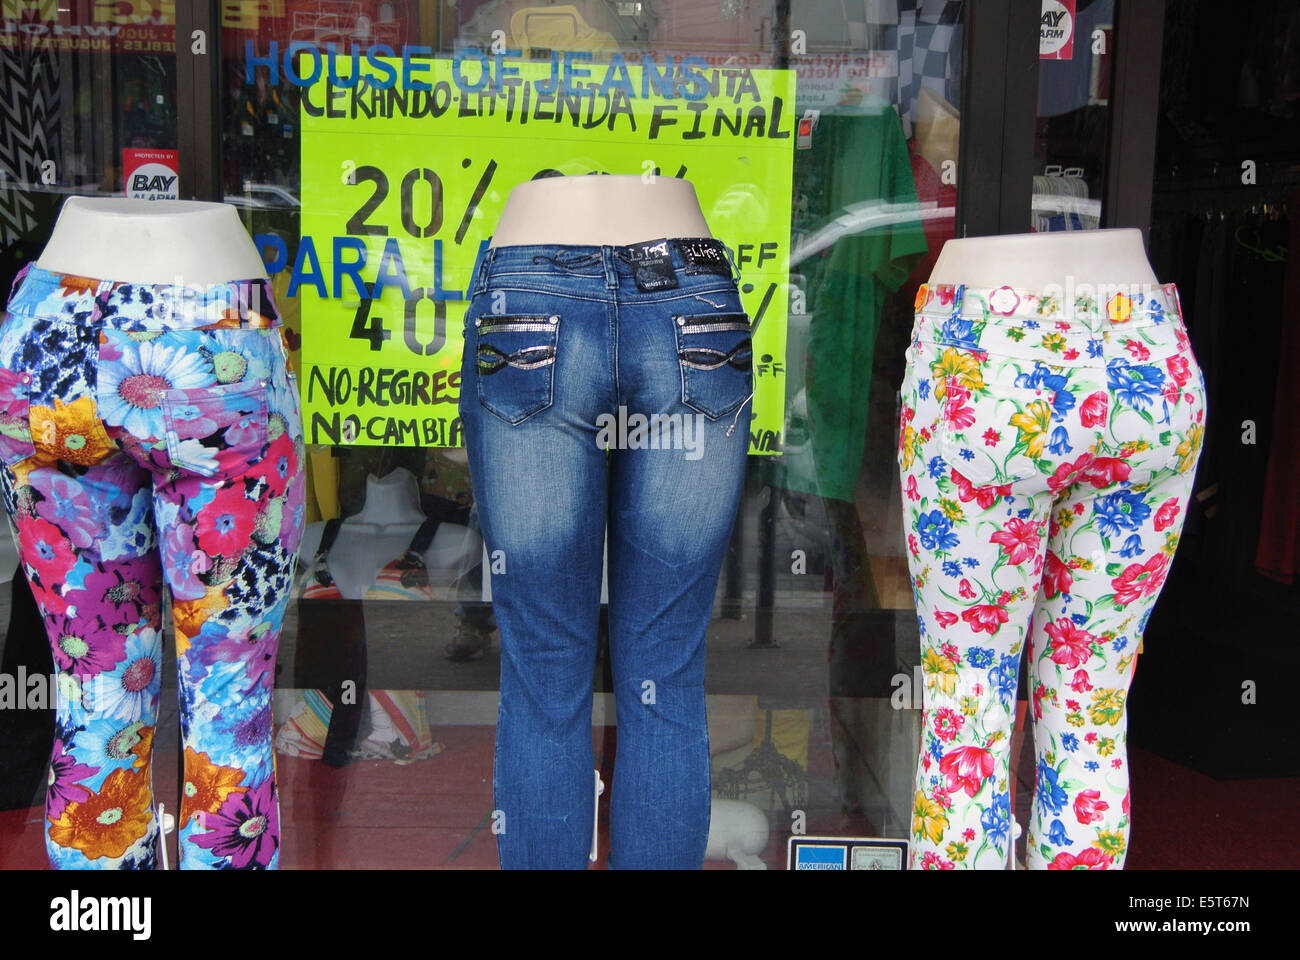 hot pants in window of Mission district Boutique - Stock Image